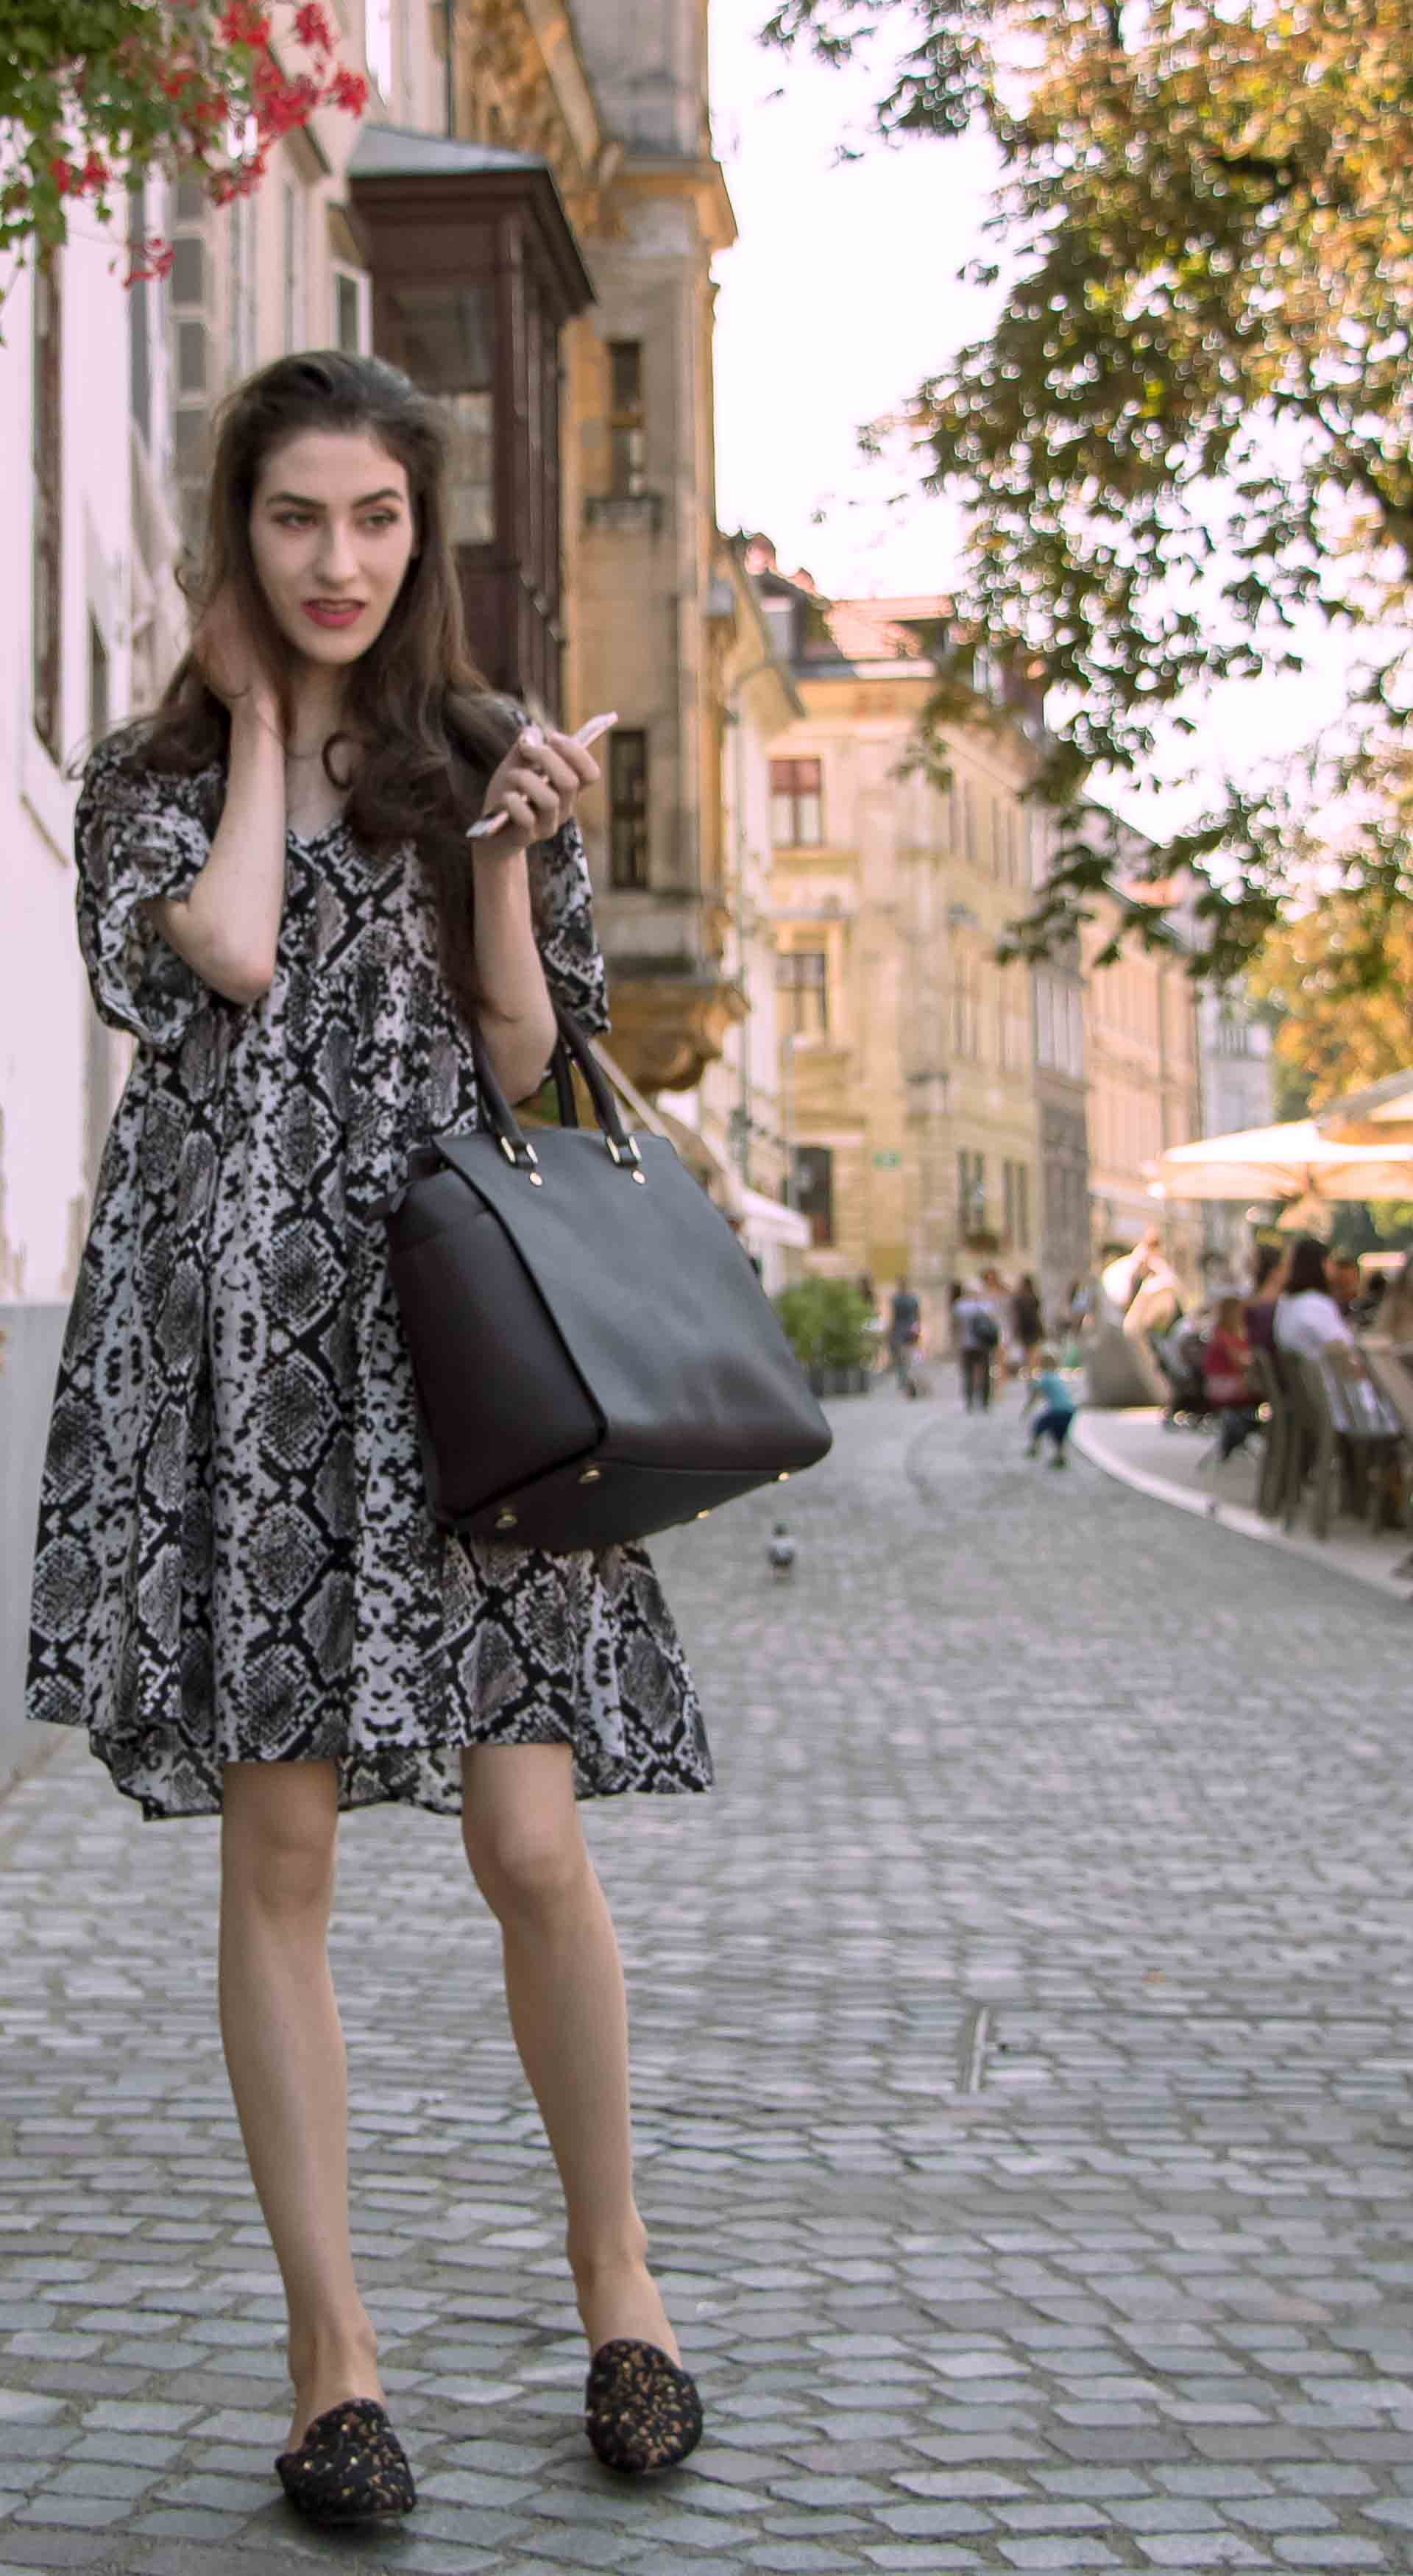 Beautiful Slovenian Fashion Blogger Veronika Lipar of Brunette from Wall dressed in boho chic flowing short snake print dress from Zara, black flat mules standing on the street in Ljubljana